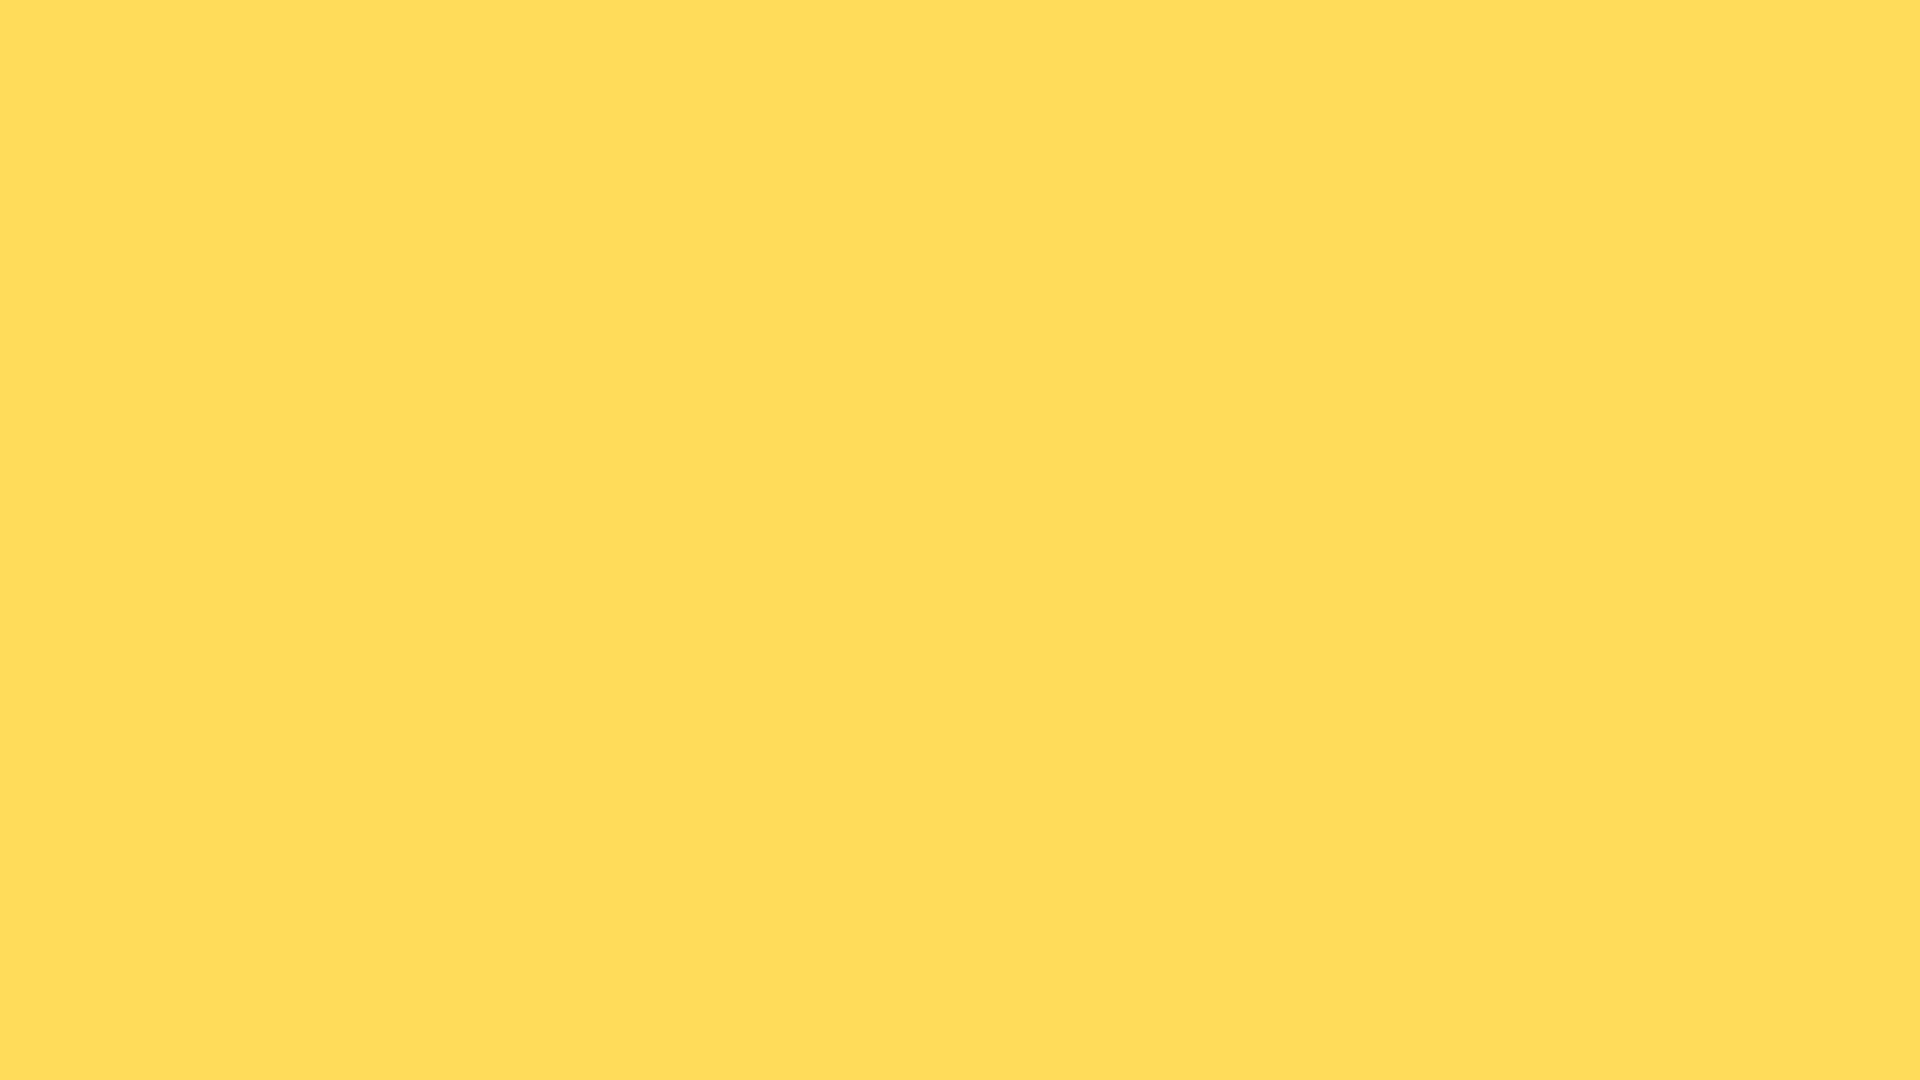 1920x1080 Mustard Solid Color Background